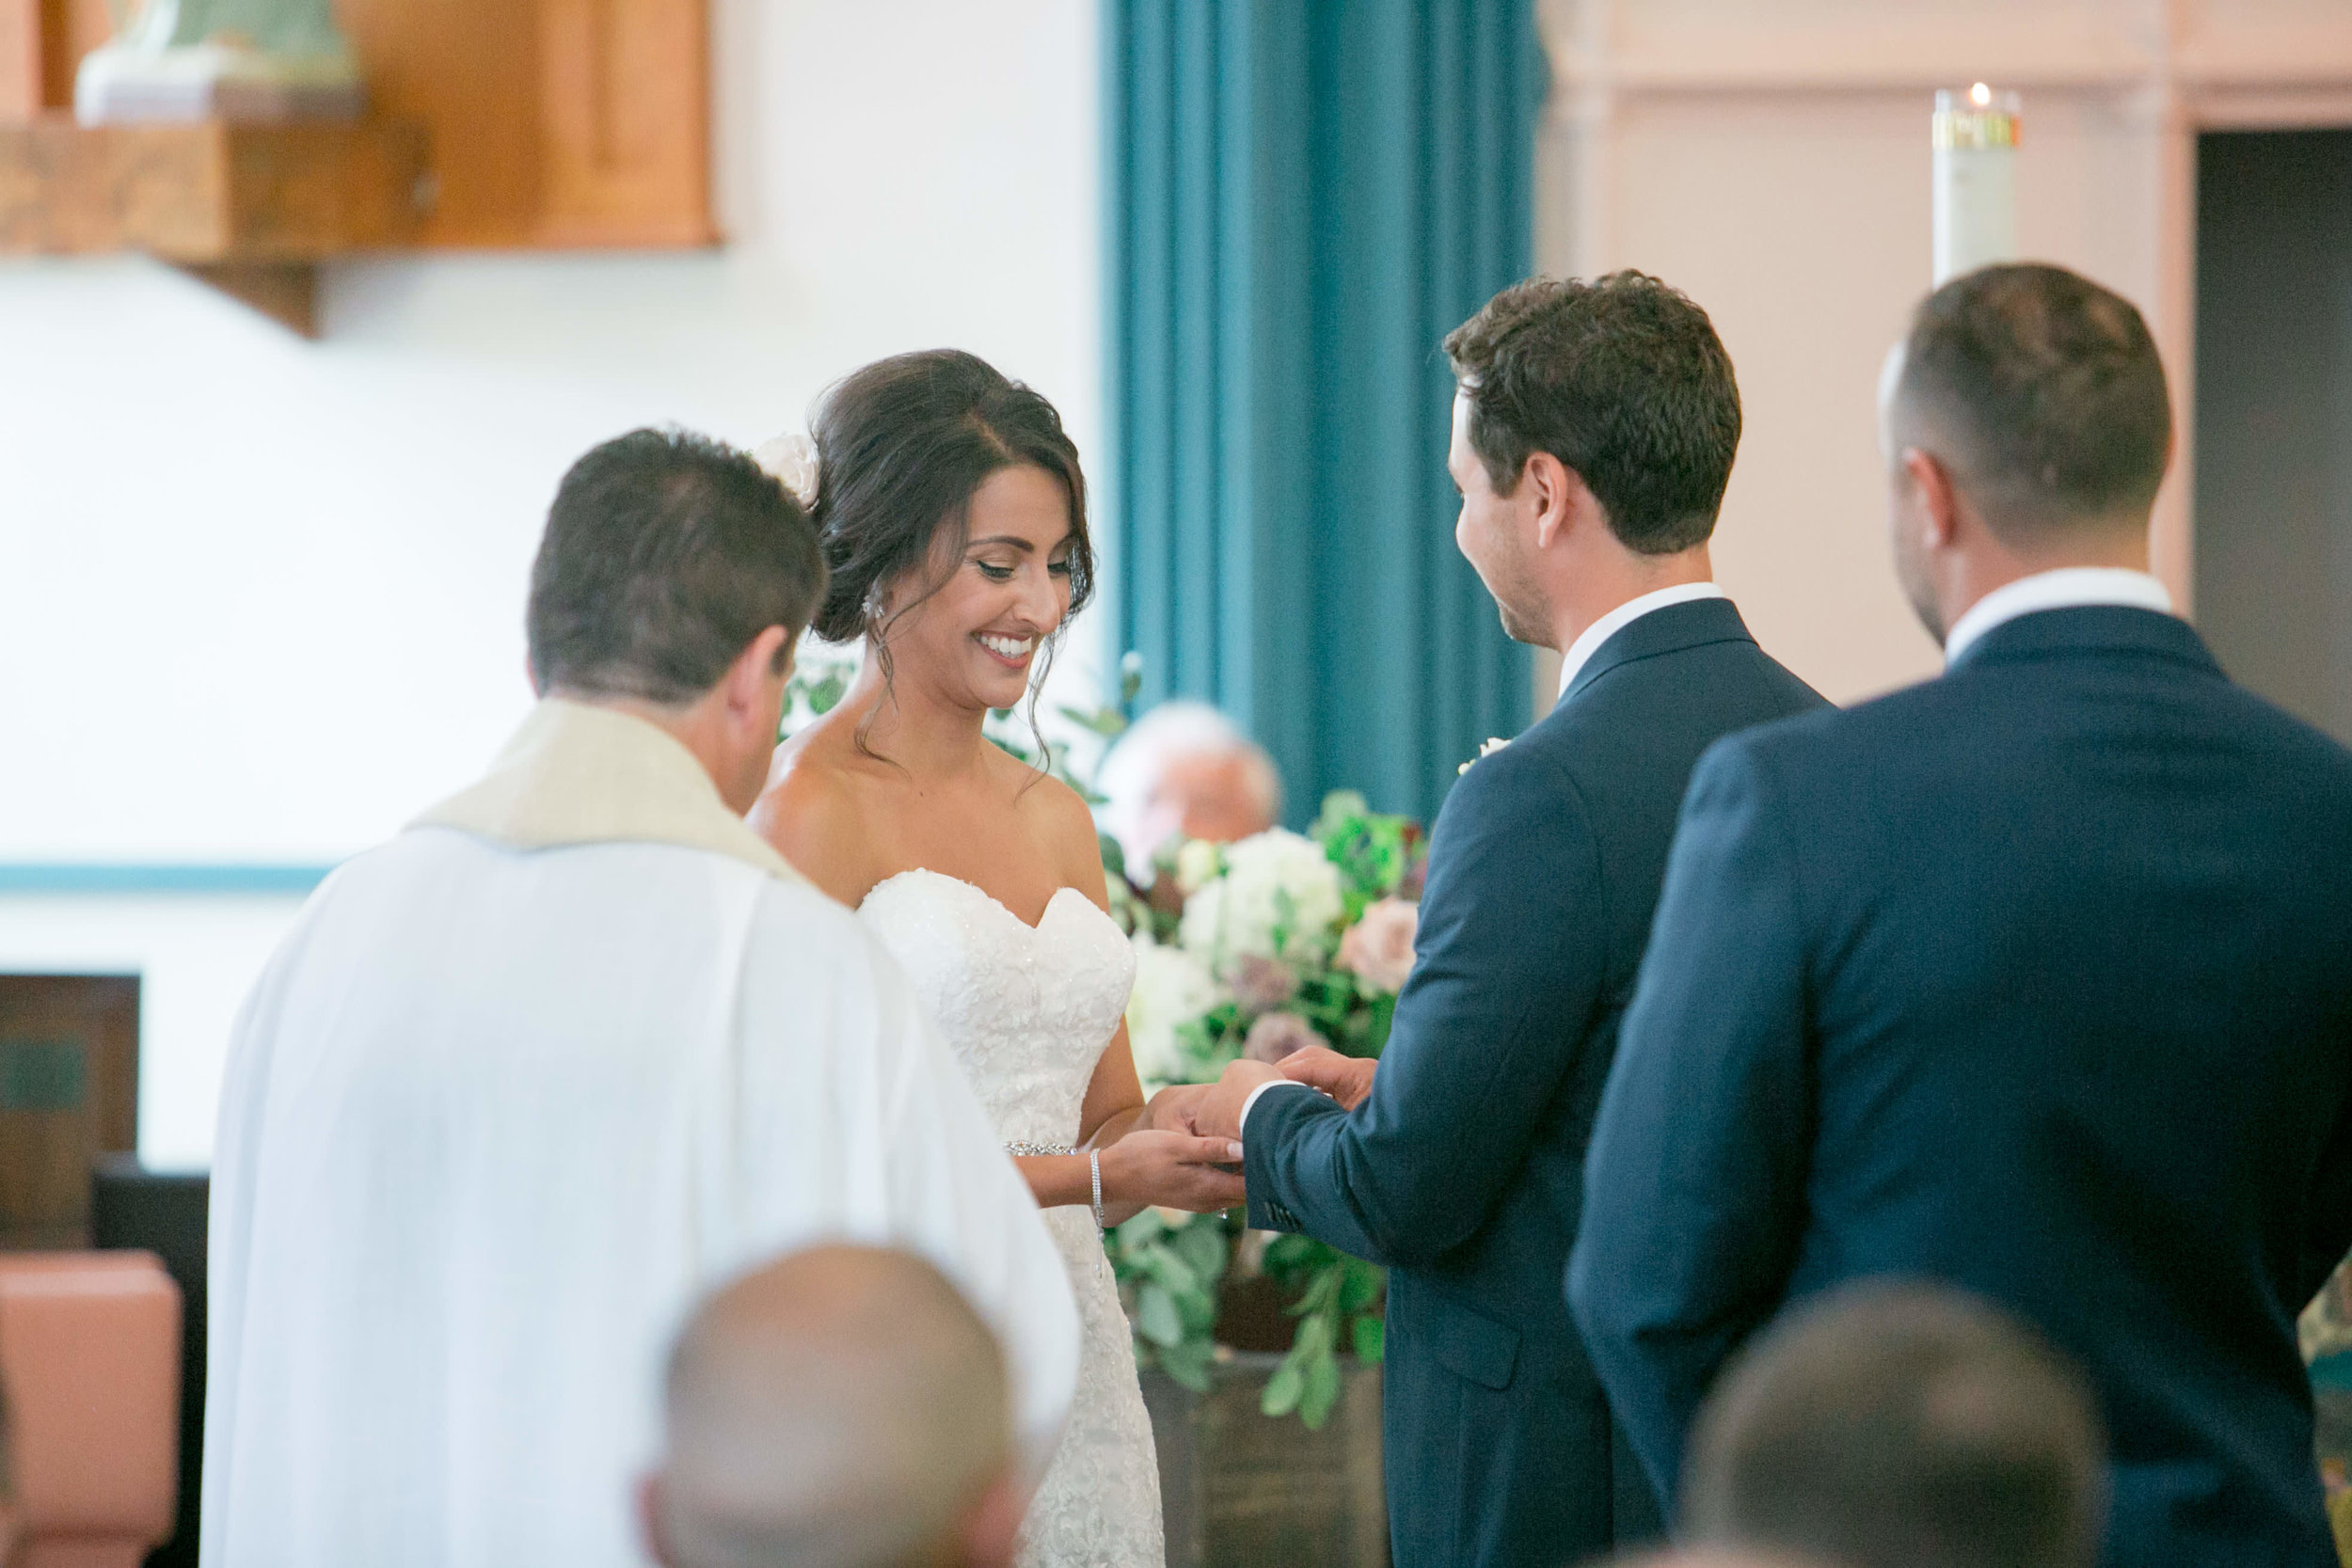 Sabrina___Jonathan_Wedding___High_Res._Finals_Daniel_Ricci_Weddings_312.jpg